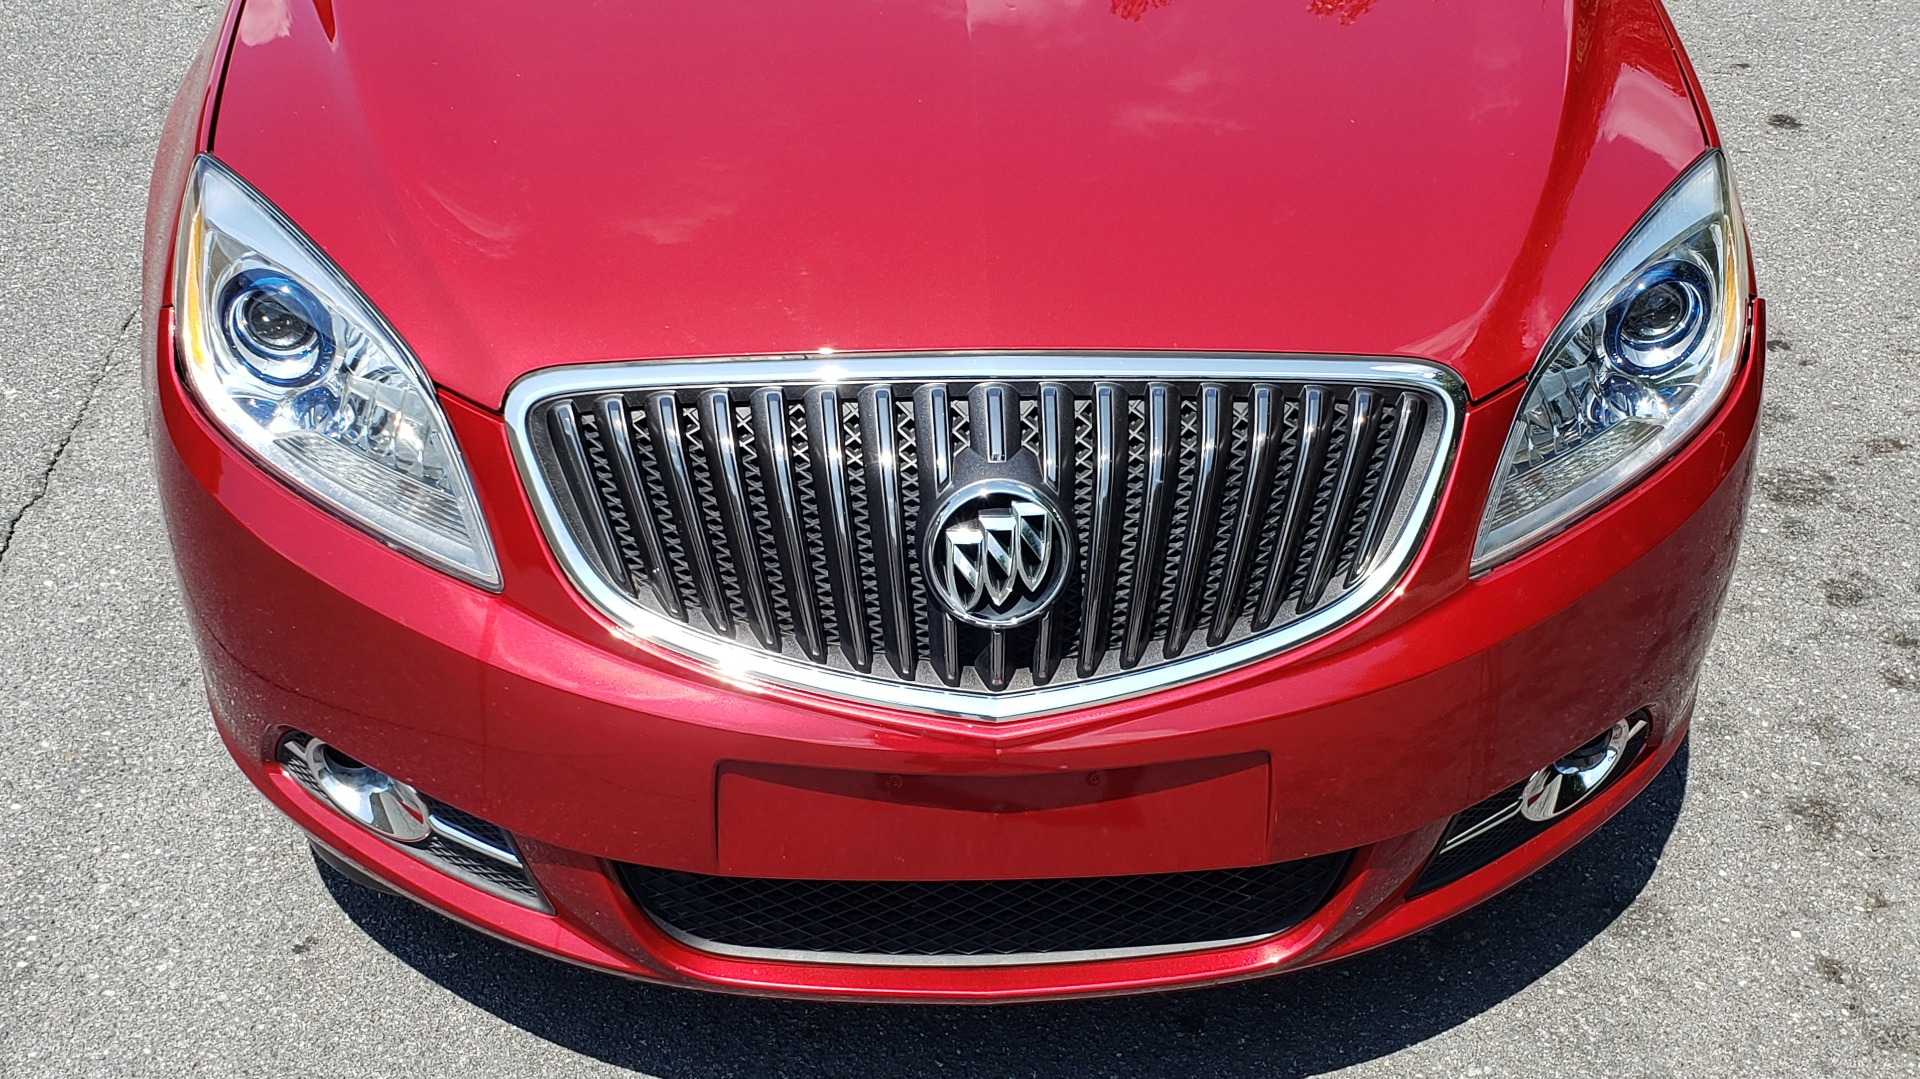 Used 2016 Buick VERANO SPORT TOURING / SUNROOF / HTD STS / 18IN WHEELS / REARVIEW for sale Sold at Formula Imports in Charlotte NC 28227 16